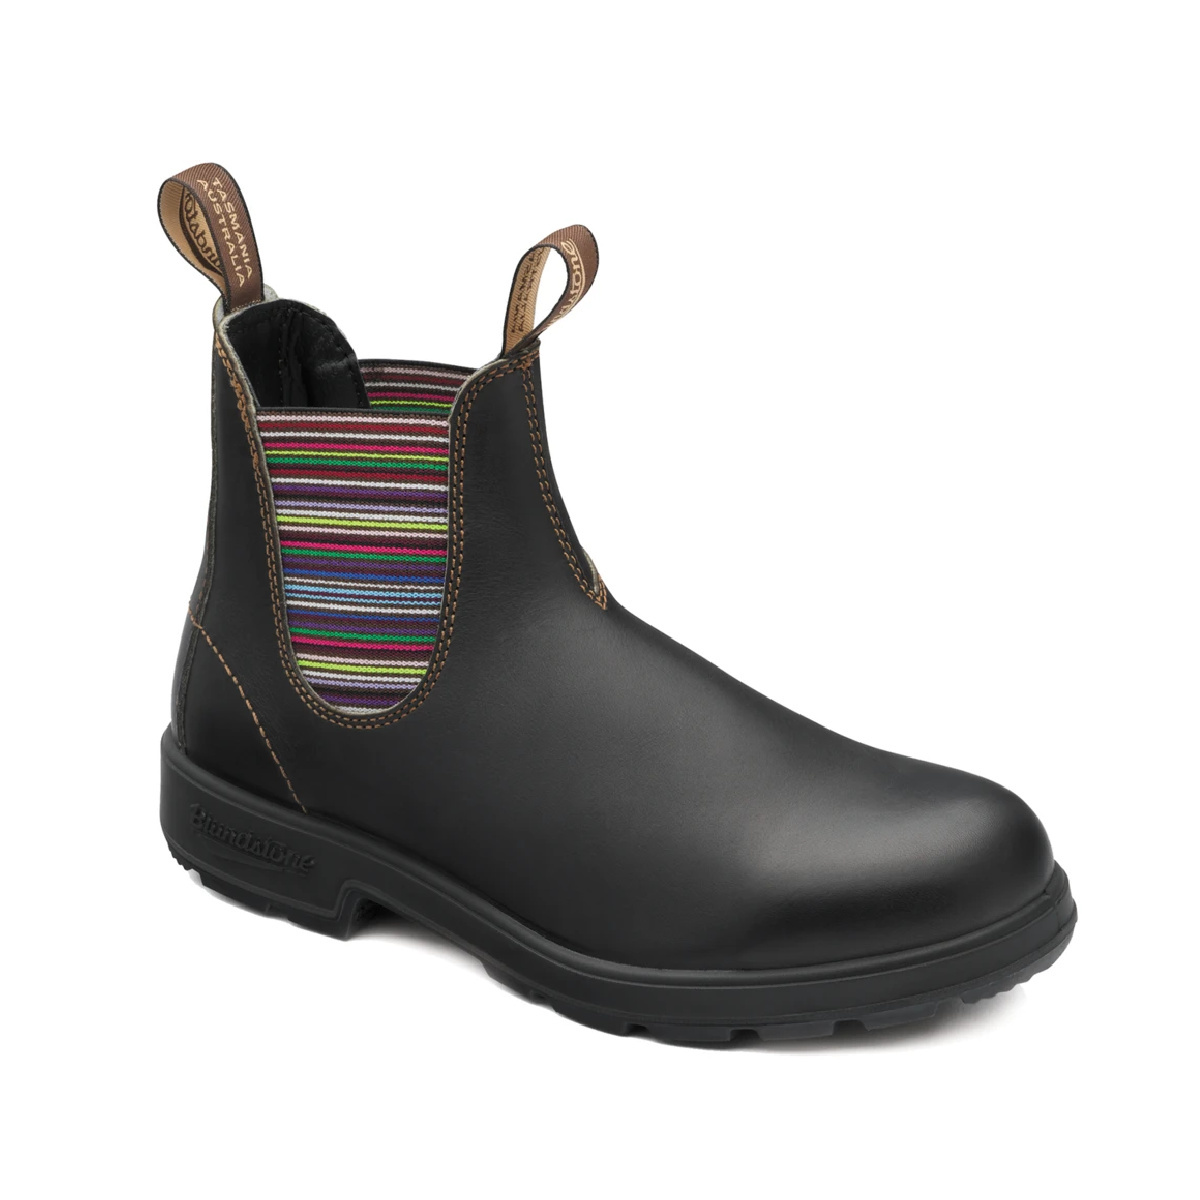 Blundstone Blundstone 1409 Women's Original Stout Brn Strip